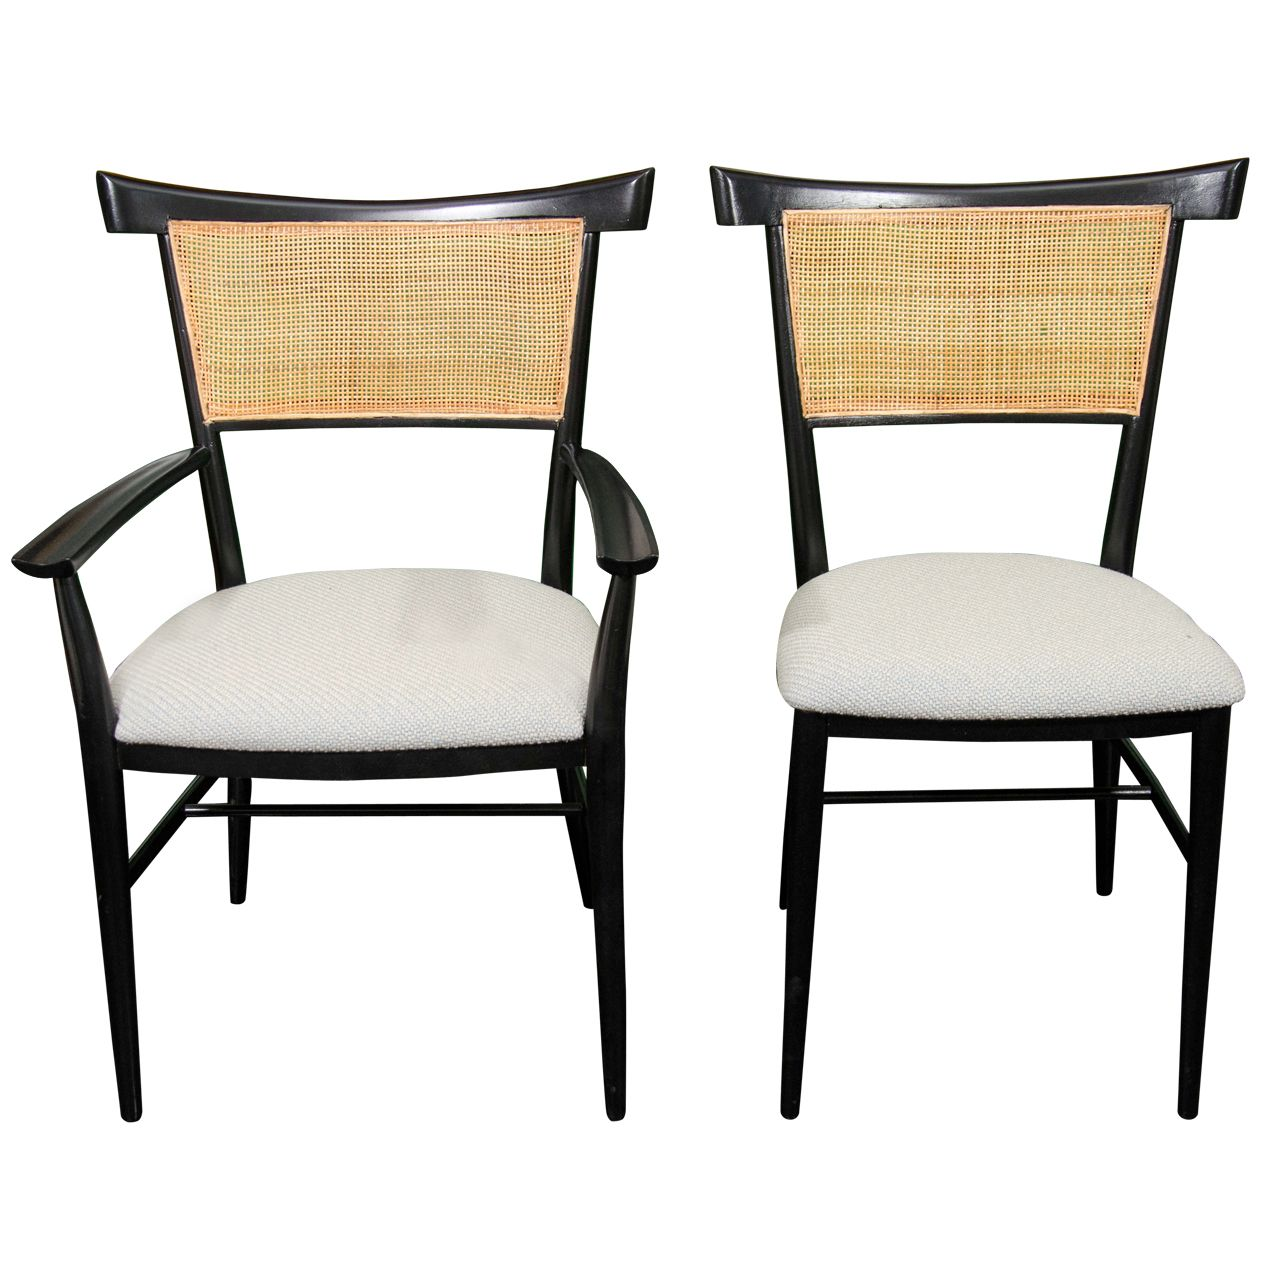 Black Lacquer Dining Room Chairs: Set Of 6 Black Lacquer And Cane Paul McCobb Dining Chairs